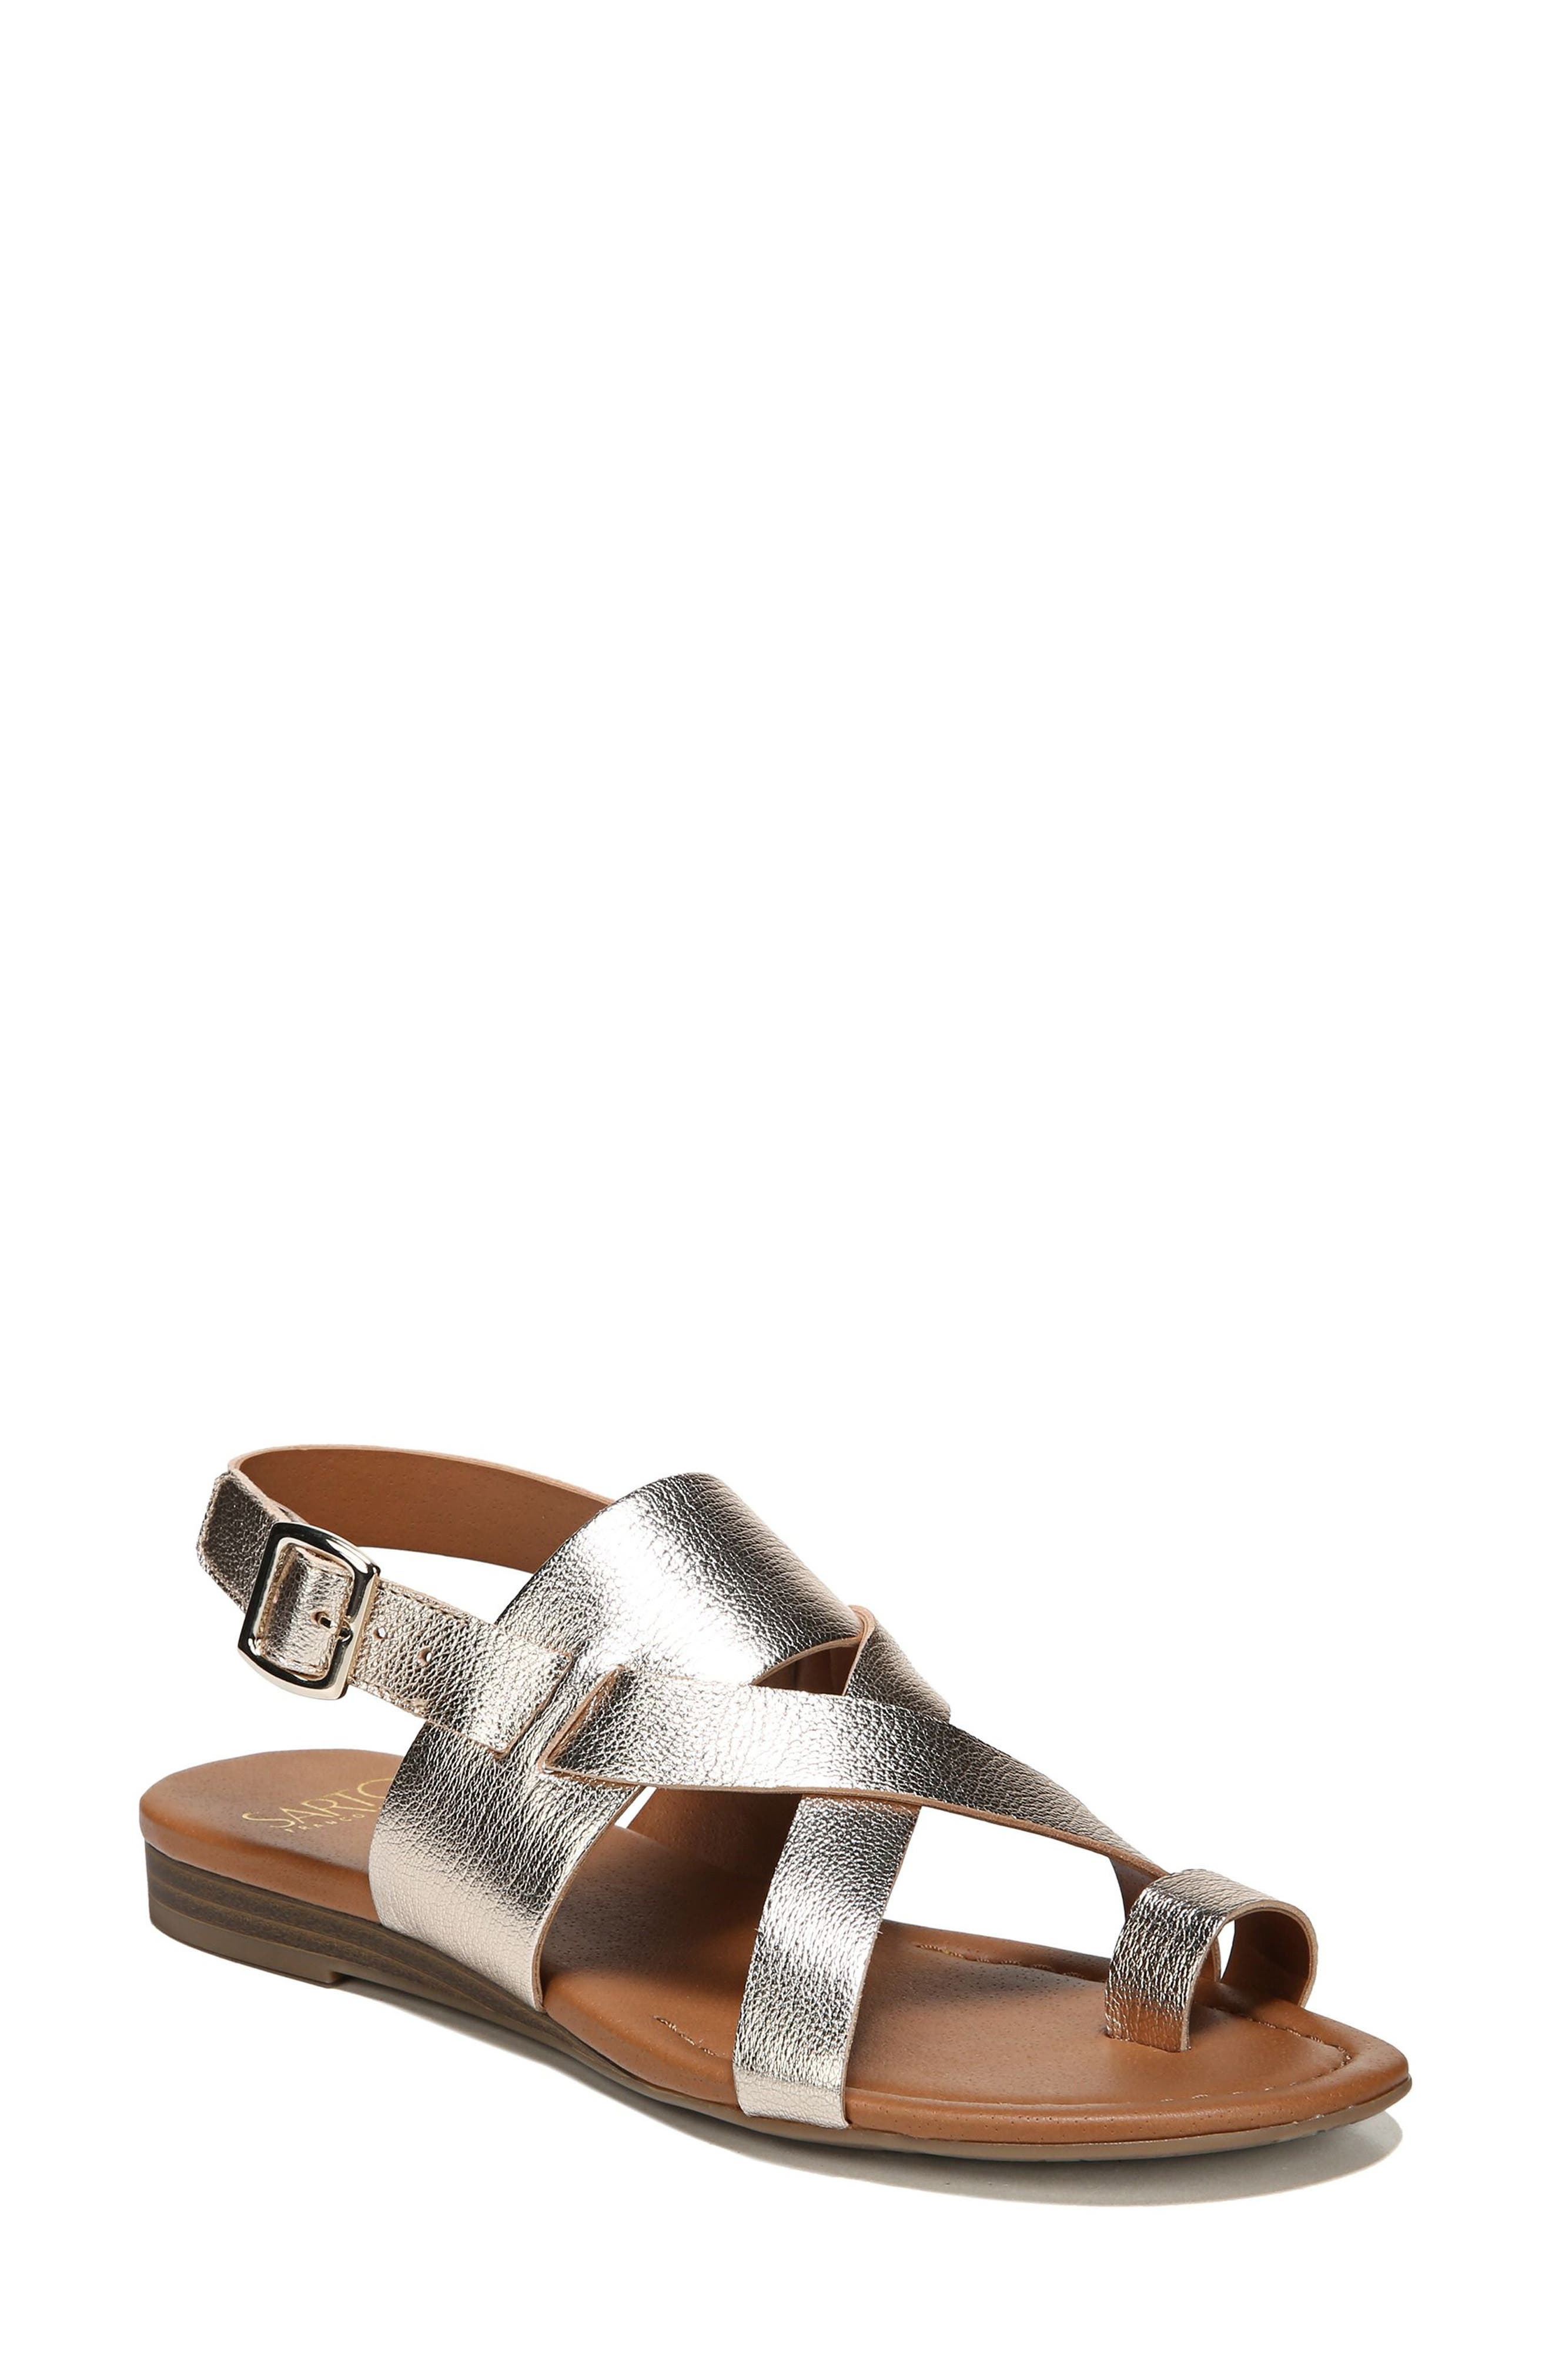 Gia Sandal,                         Main,                         color, Platinum Gold Leather